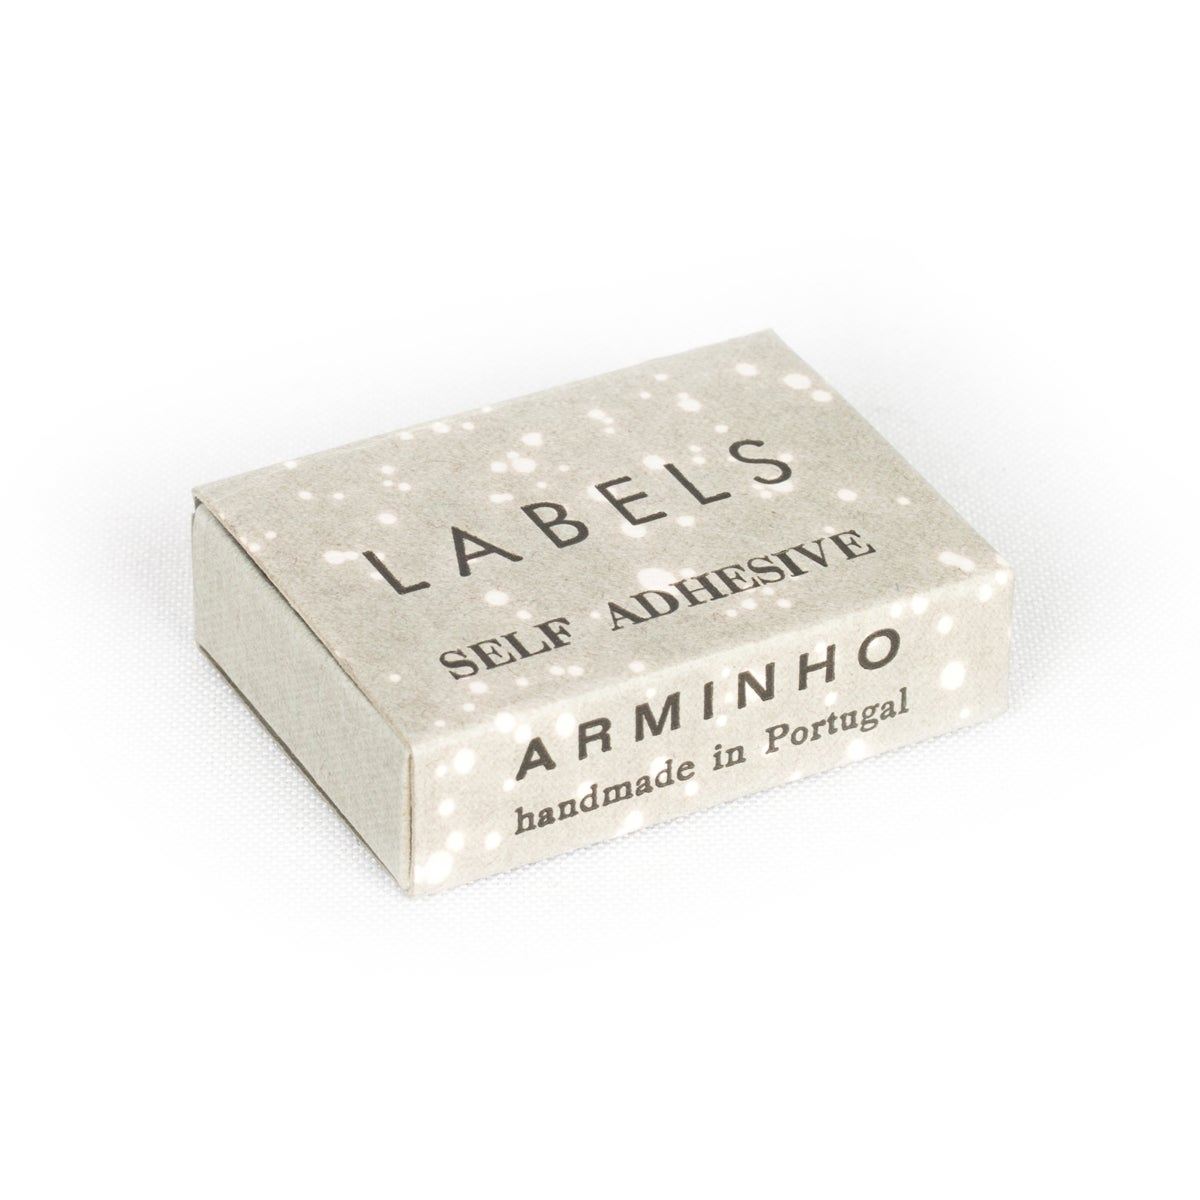 Image of Labels Box - self adhesive